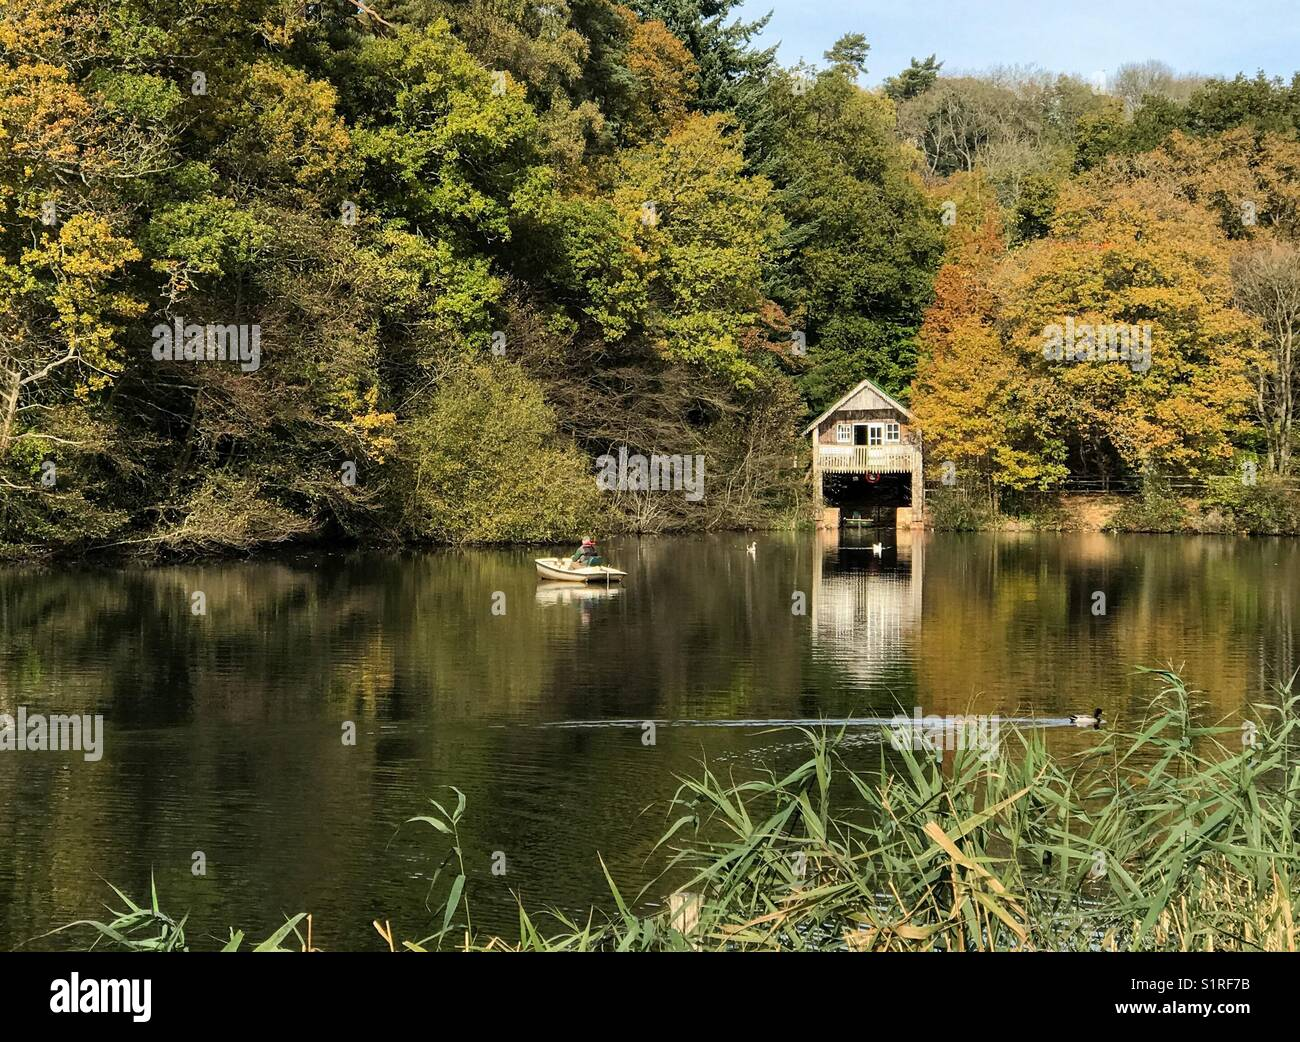 UK Weather: Sunny in Godalming. Winkworth Arboretum, Godalming. 30th October 2017. Beautiful sunshine over the Home - Stock Image